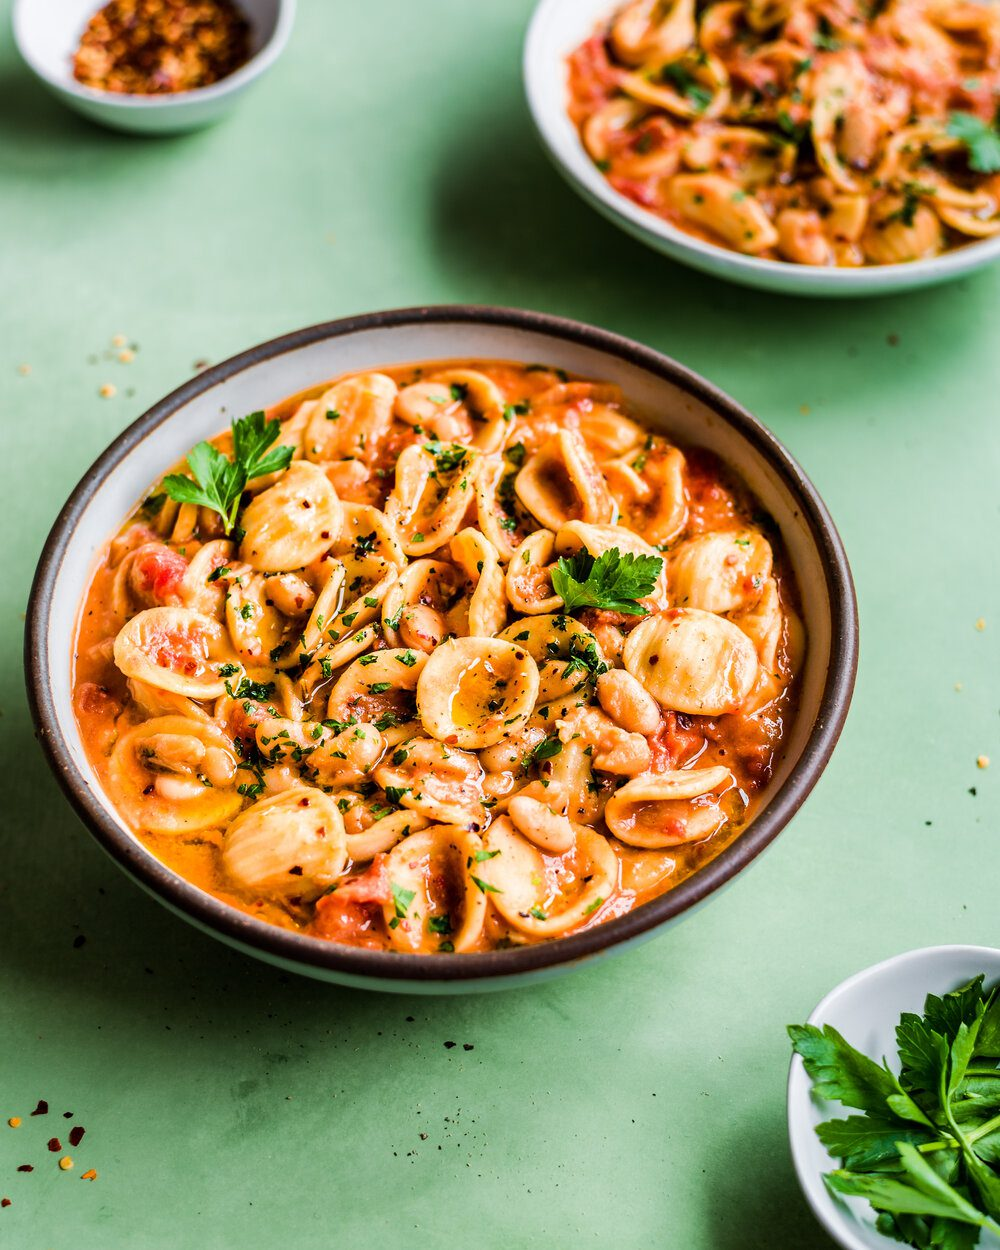 Vegan Italian White Bean and Pasta Stew. Pasta food photography.